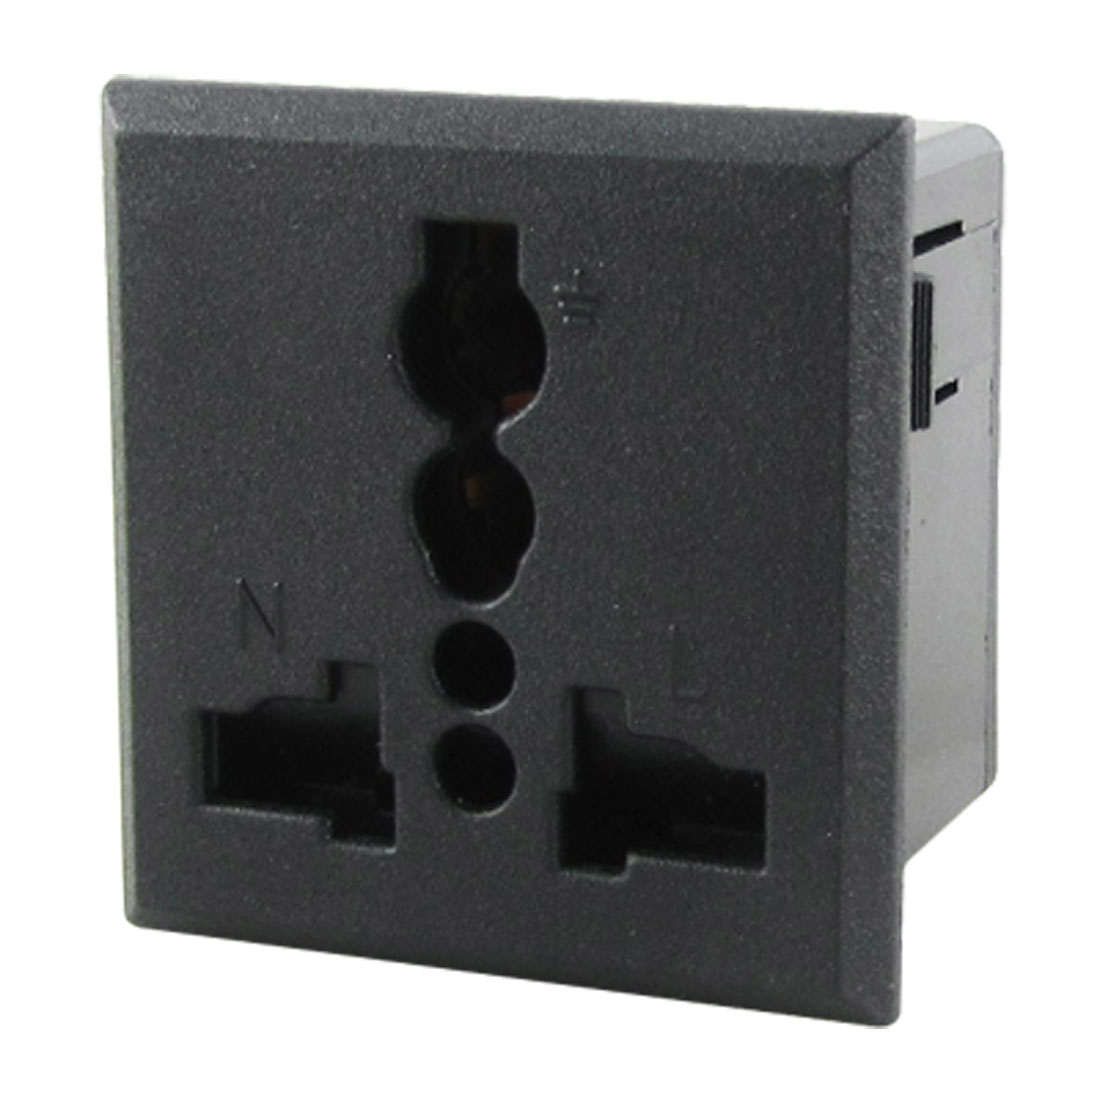 US UK EU AU Plug AC 250V 13A Square Panel Socket Plug Outlet Power Receptacle Black